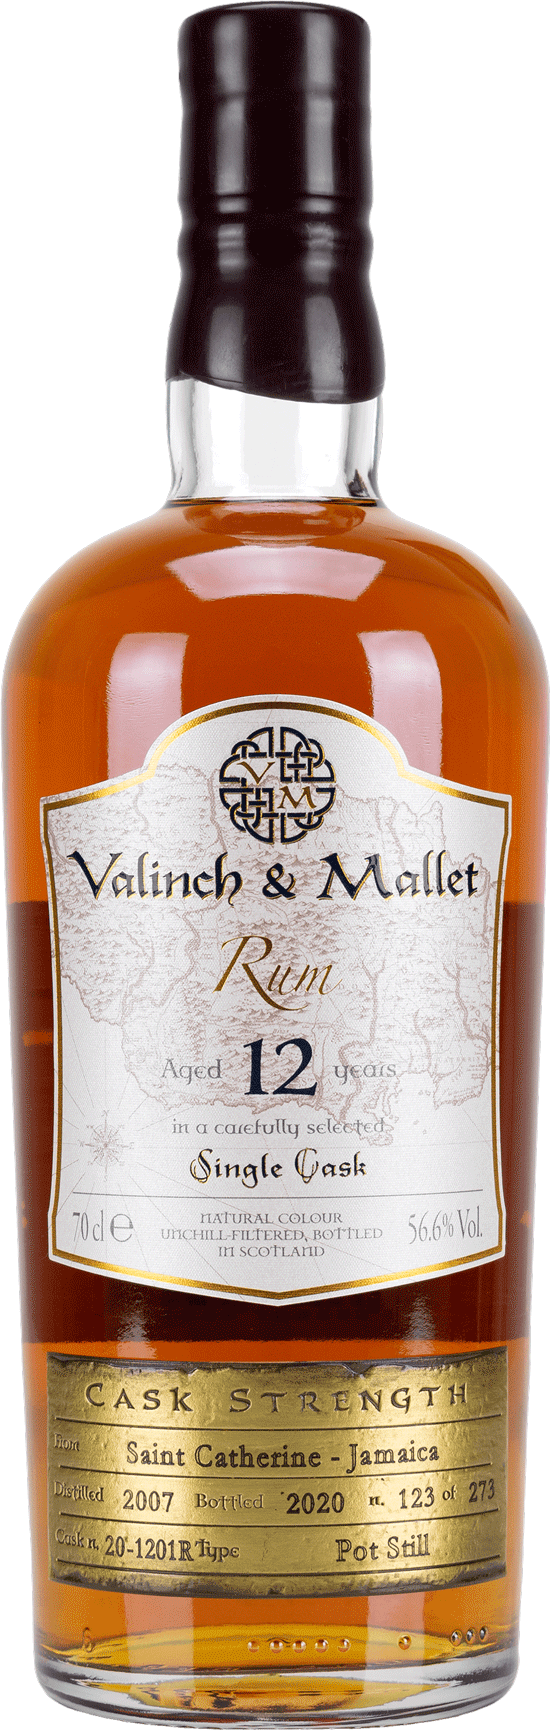 Saint Catherine 12 Valinch & Mallet Pure Single Rum